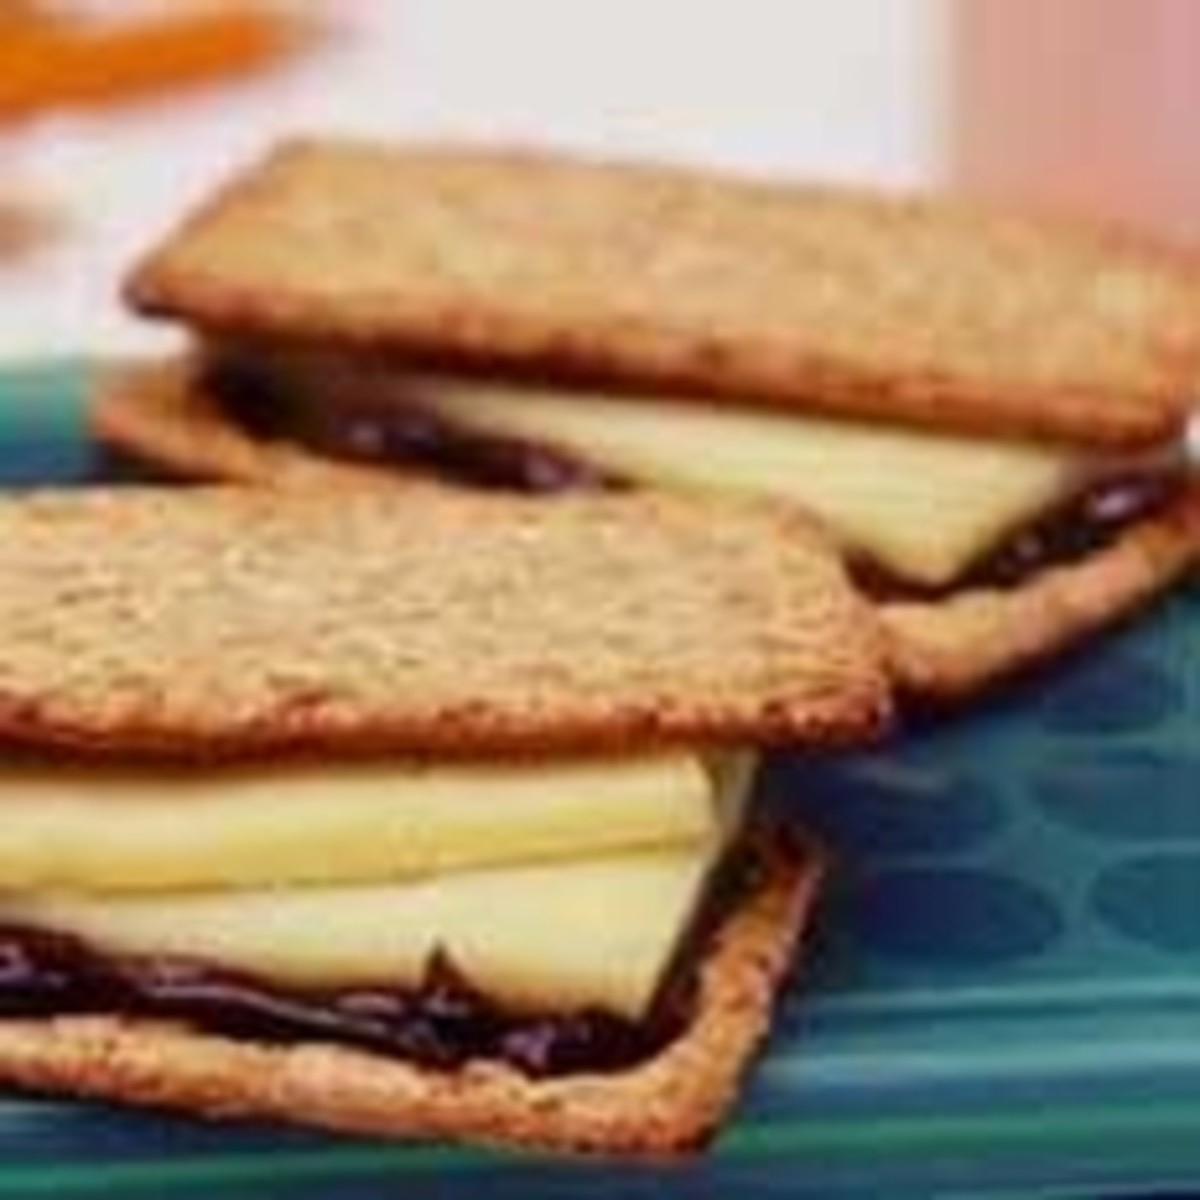 Vegemite and cheese on rye wheat crackers